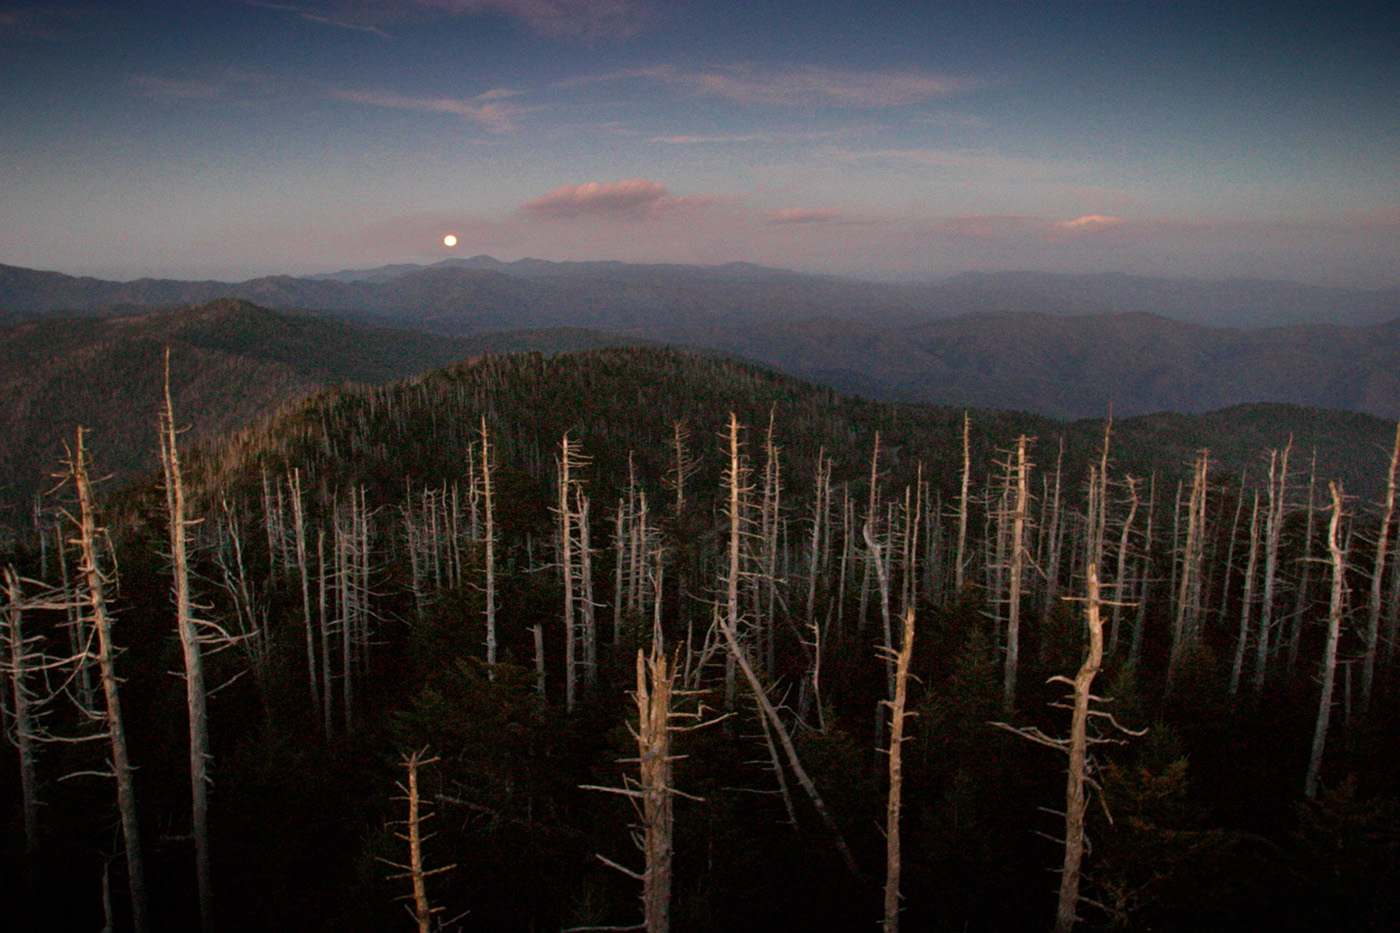 Tennessee Moonrise, Clingmans Dome, Great Smoky Mountains National Park, Gatlinburg, Tennessee